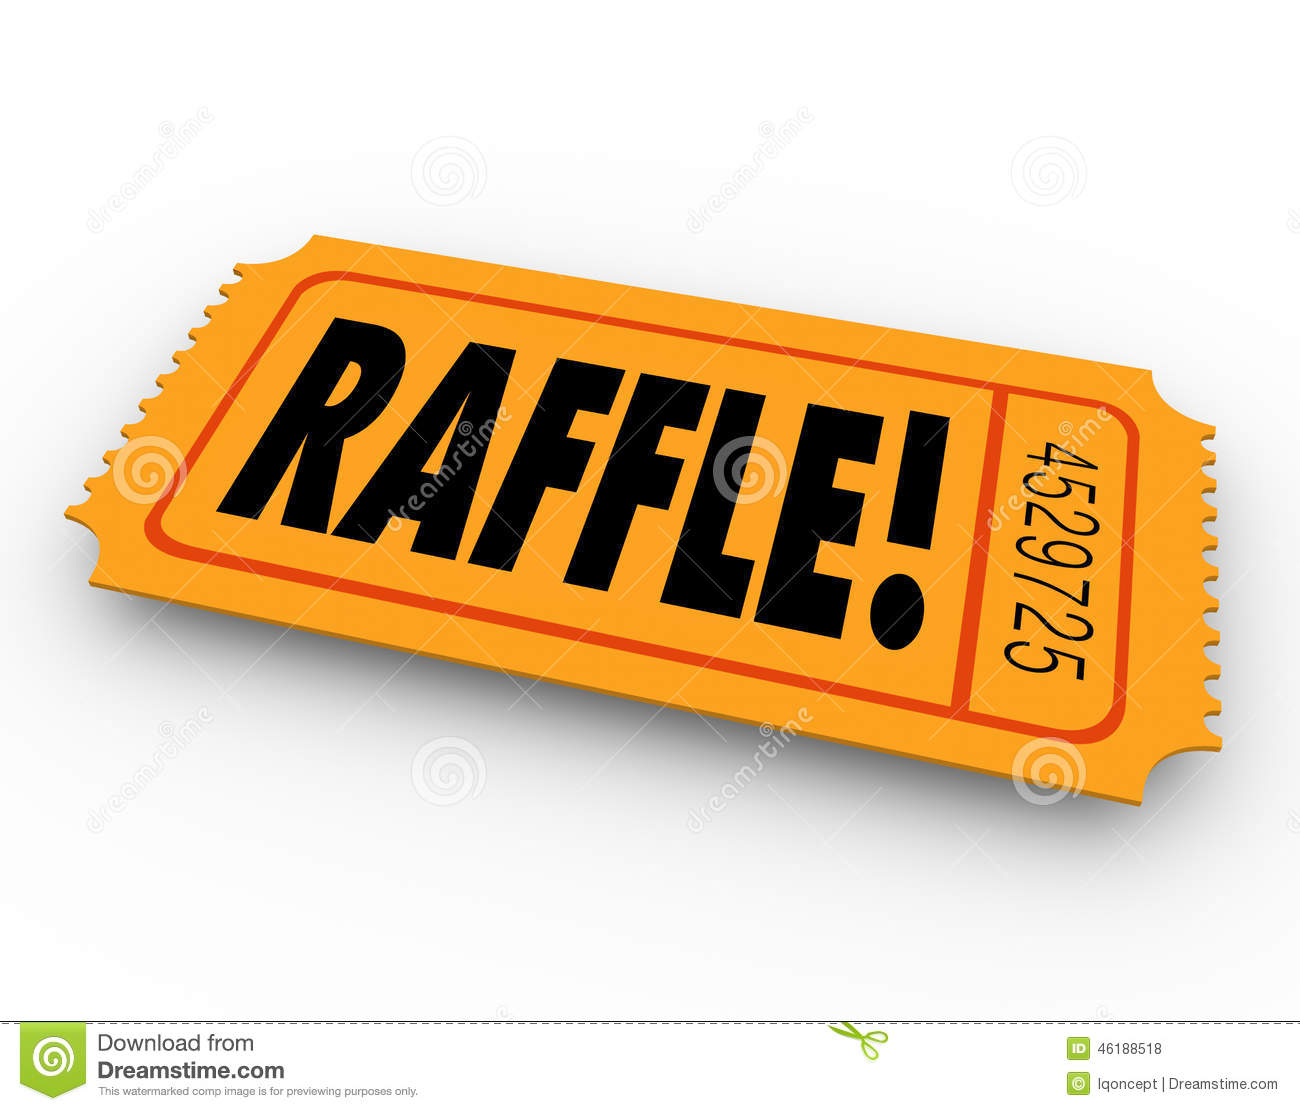 raffle drawing clipart clipart kid raffle word on orange ticket for you to enter to win a drawing for a